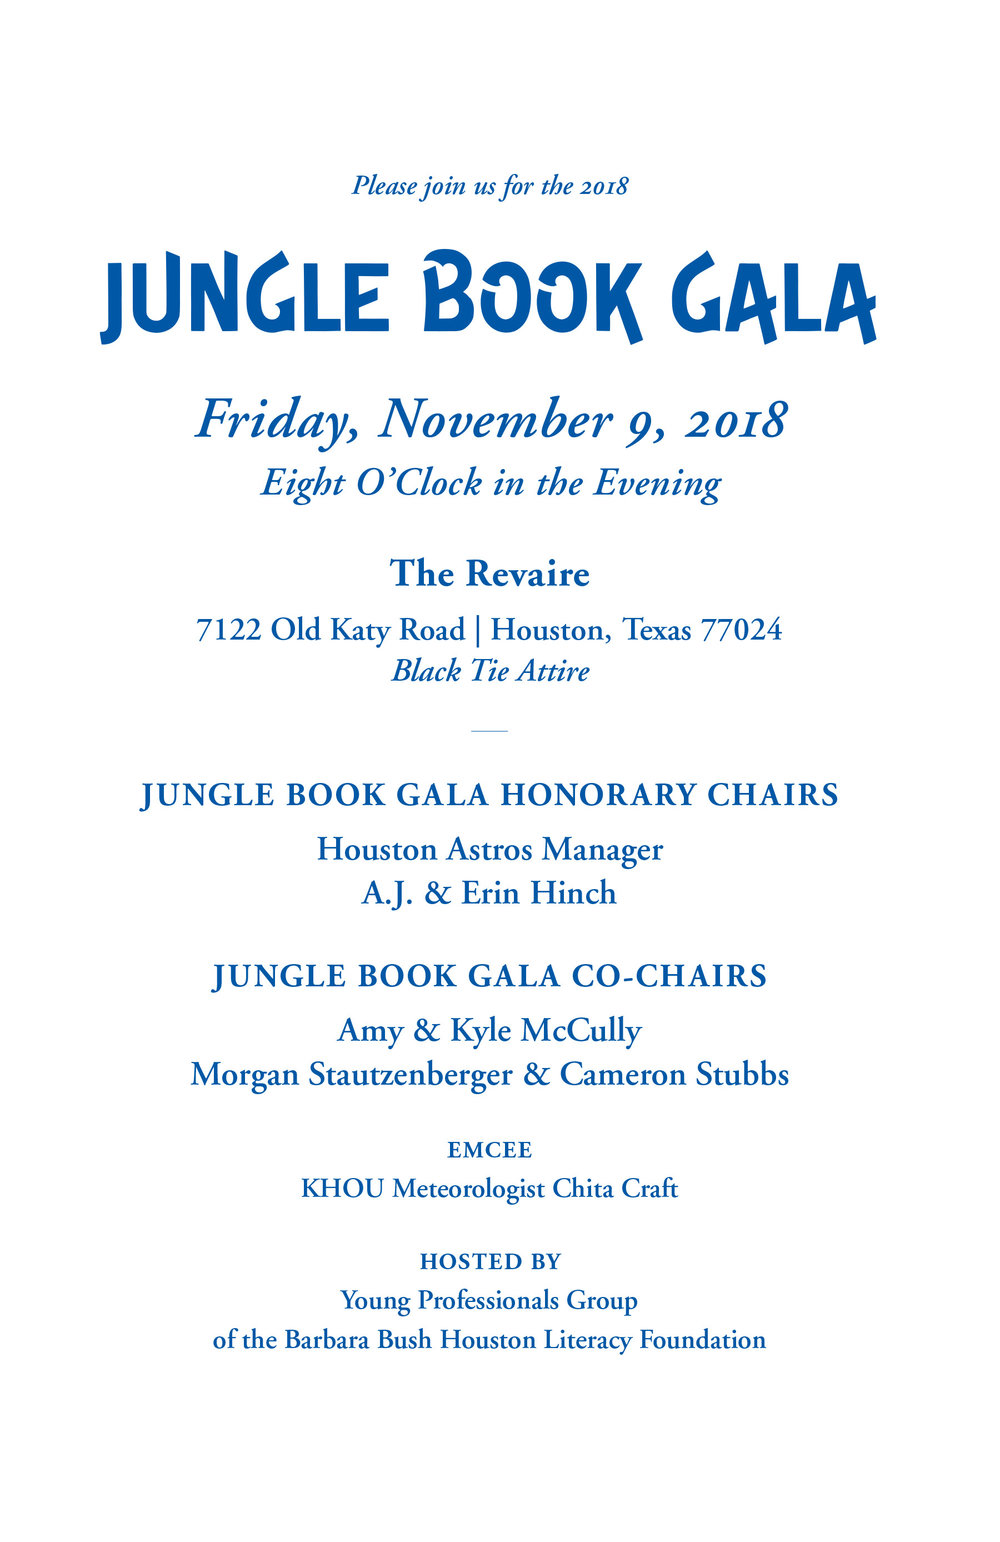 Jungle Book Gala - digital invitation_Page_2.jpg